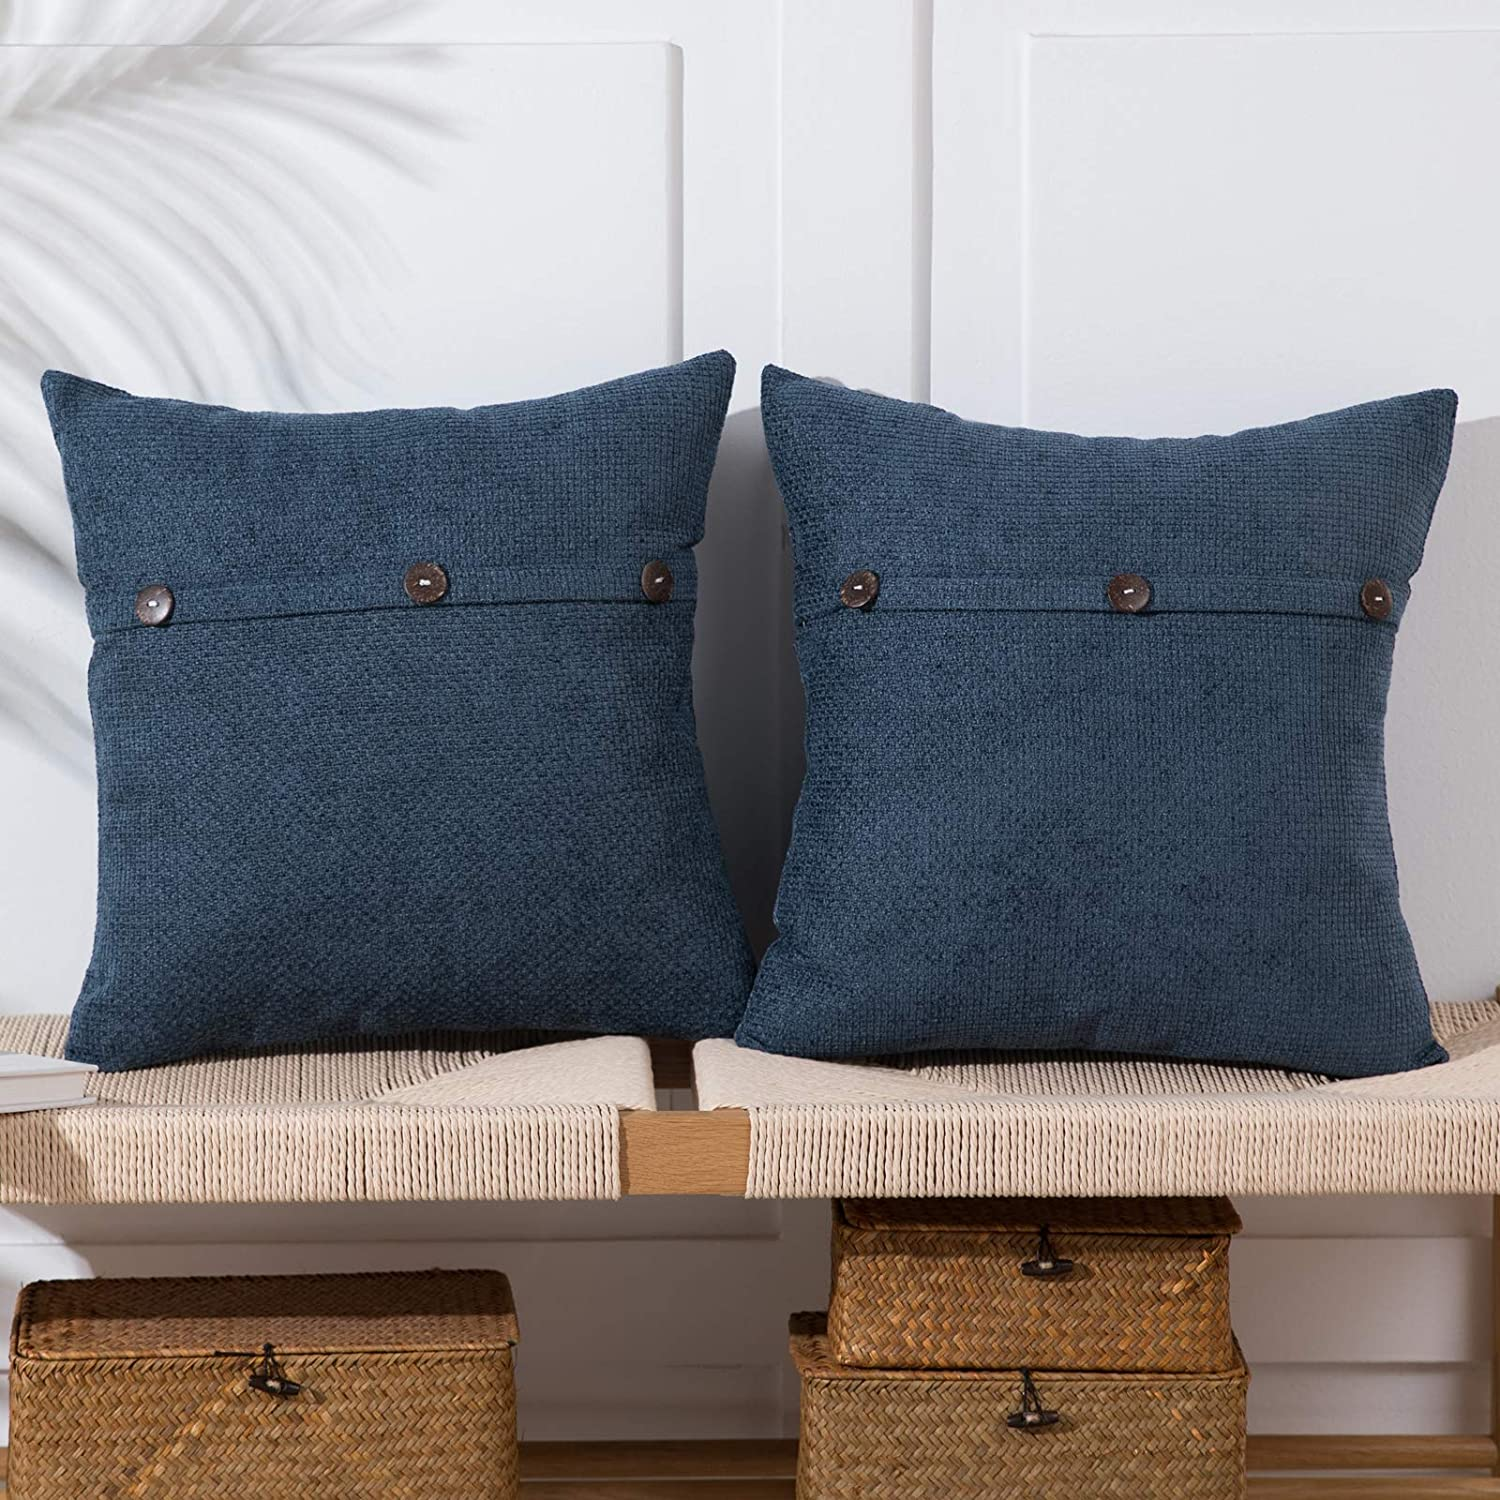 Anickal Gray Blue Pillow Covers 18x18 Inch with Triple Buttons Set of 2 Chenille Rustic Farmhouse Decorative Throw Pillow Covers Square Cushion Case for Home Sofa Couch Decoration